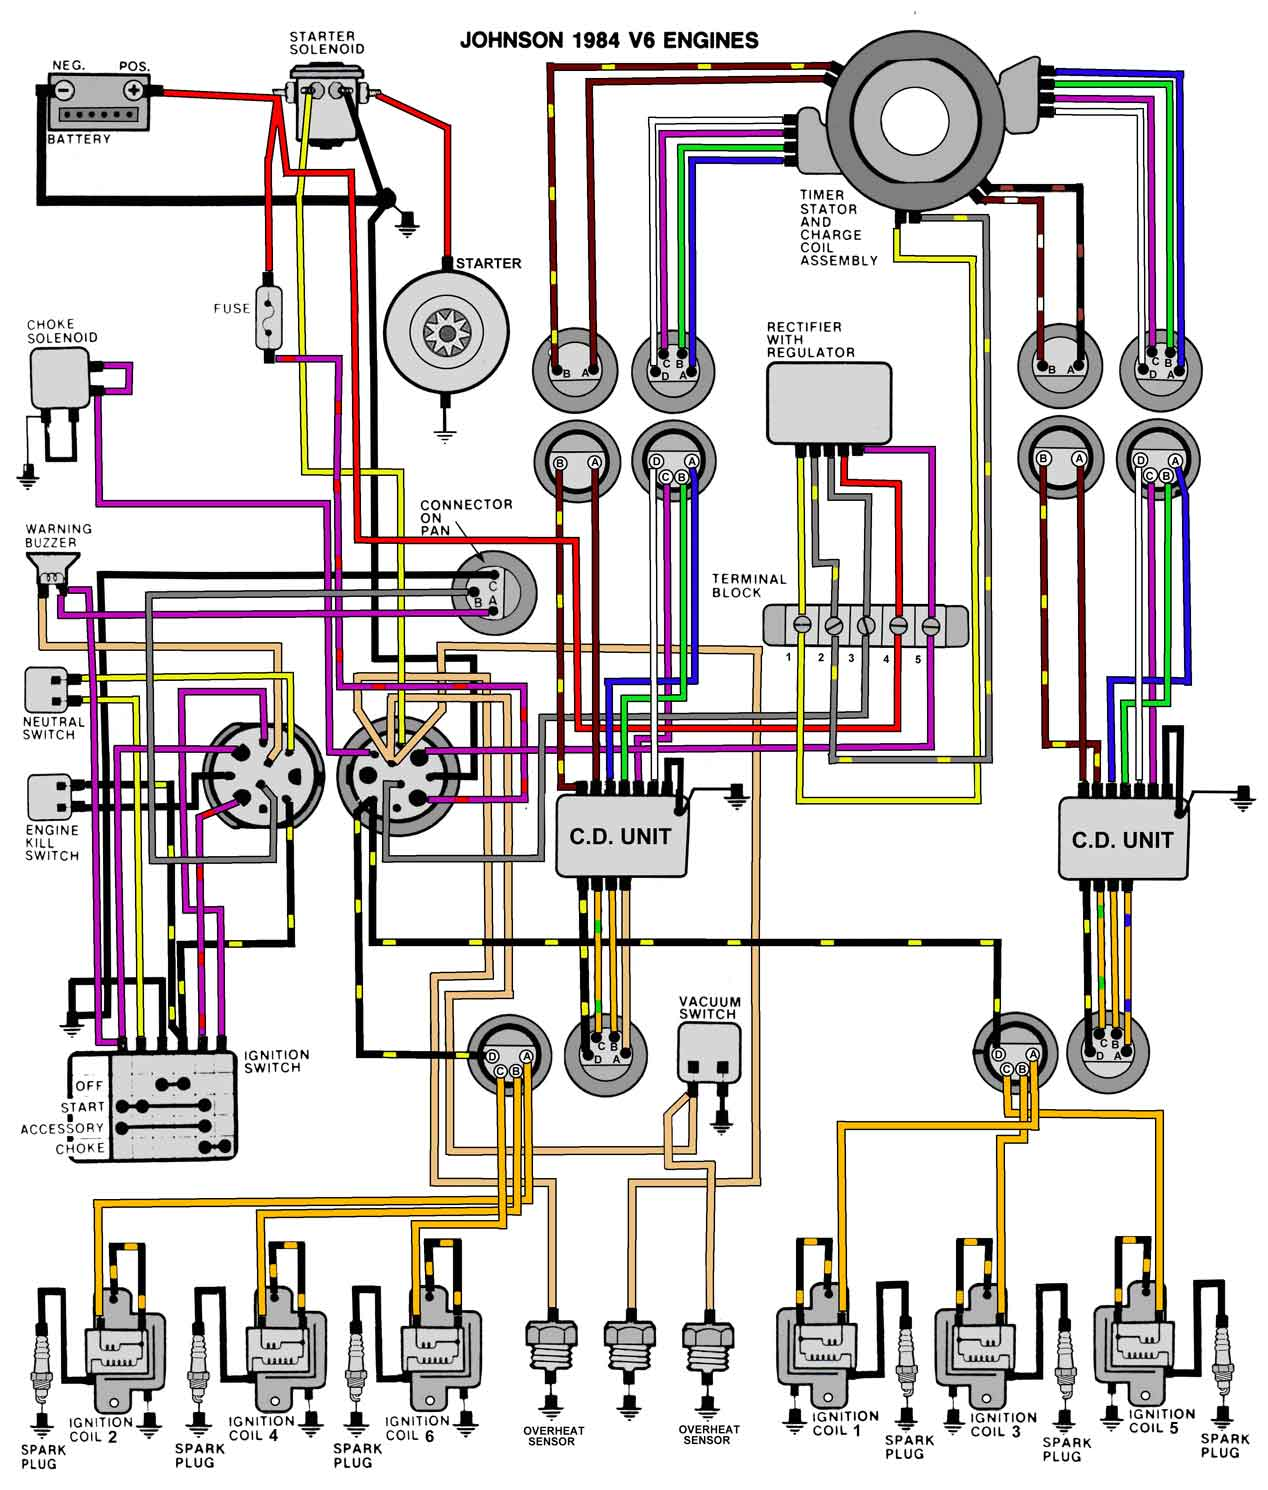 84_V6 mastertech marine evinrude johnson outboard wiring diagrams wiring diagram of motorcycle at edmiracle.co